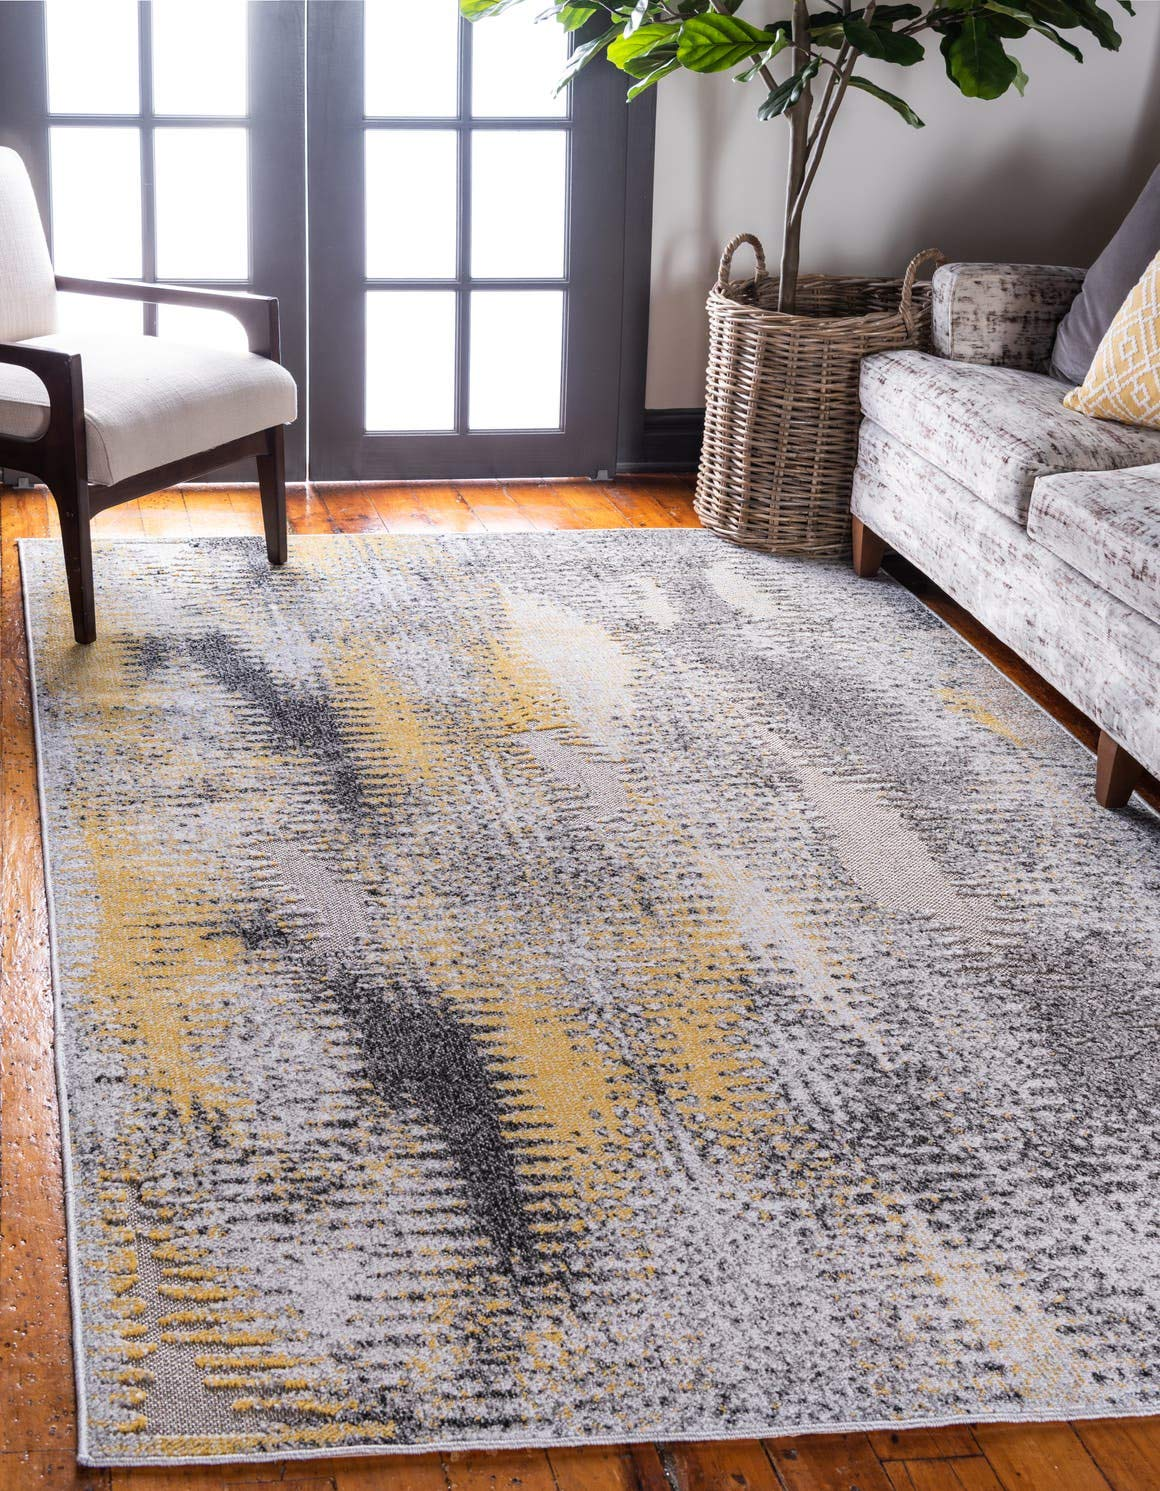 Unique Loom Outdoor Modern Collection Carved Distressed Transitional Indoor and Outdoor Flatweave Ivory Area Rug 6 0 x 9 0